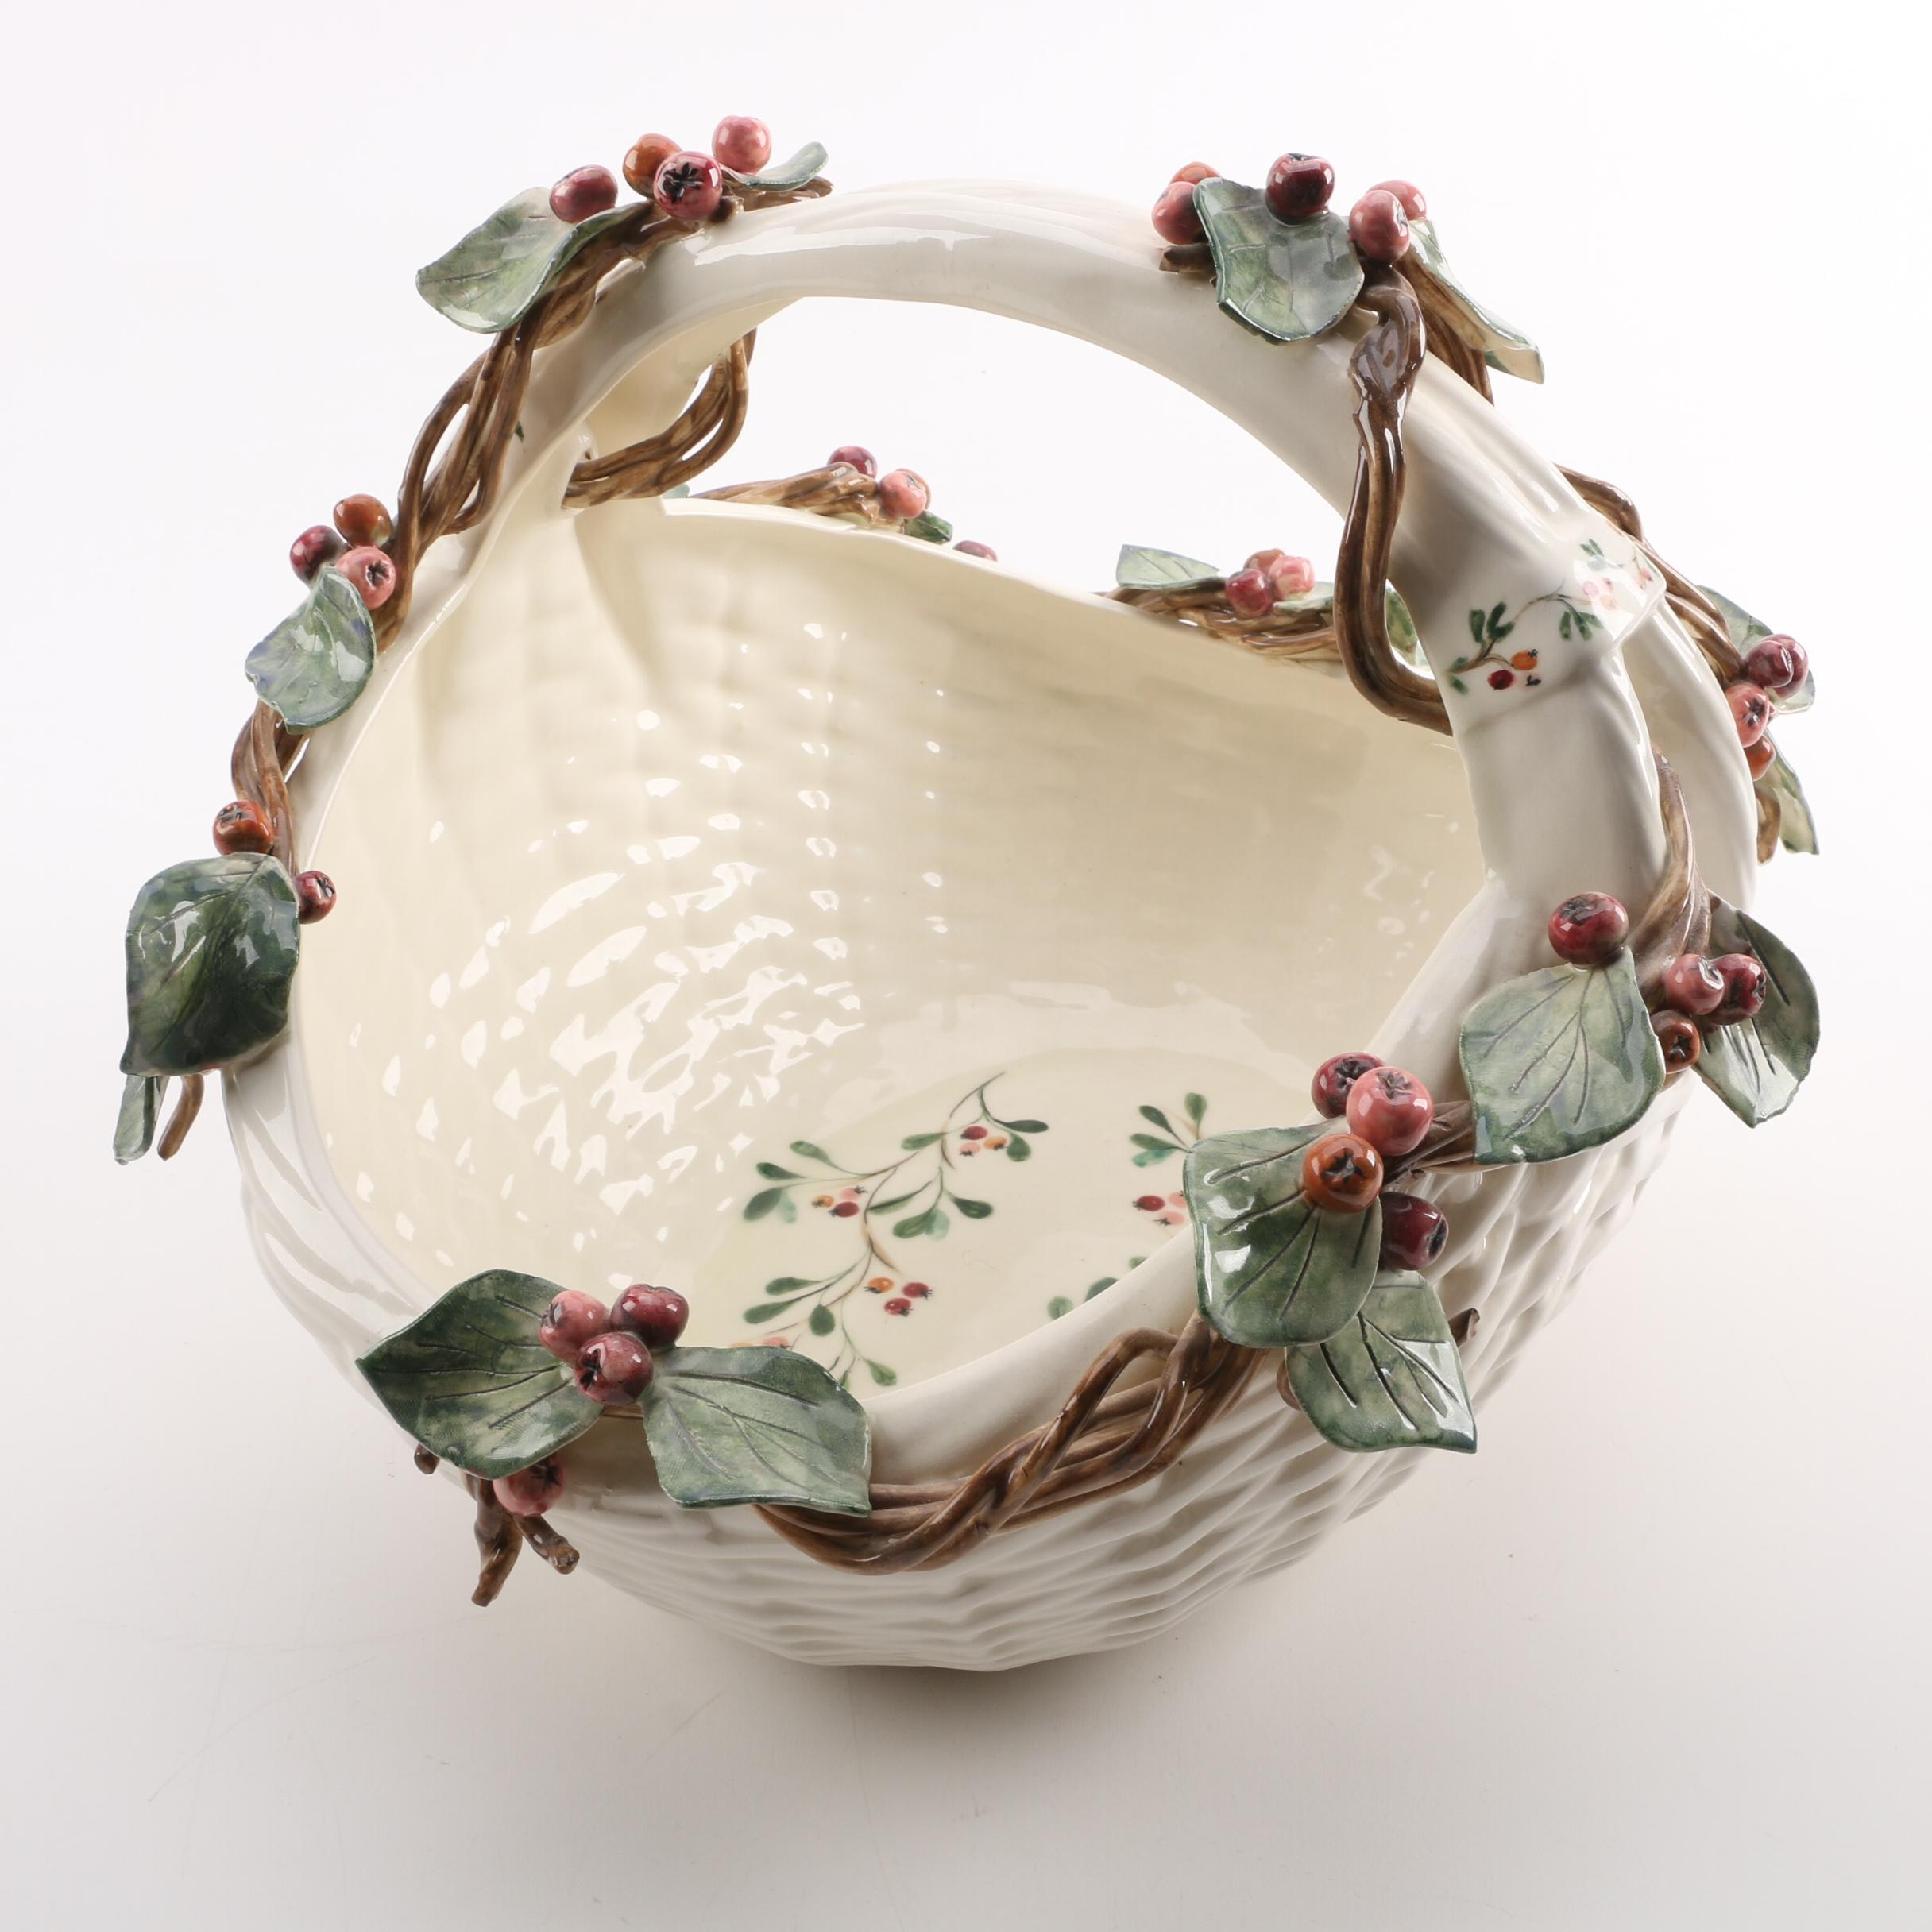 Linda Bailey Leaf and Berry Motif Hand Painted Ceramic Basket